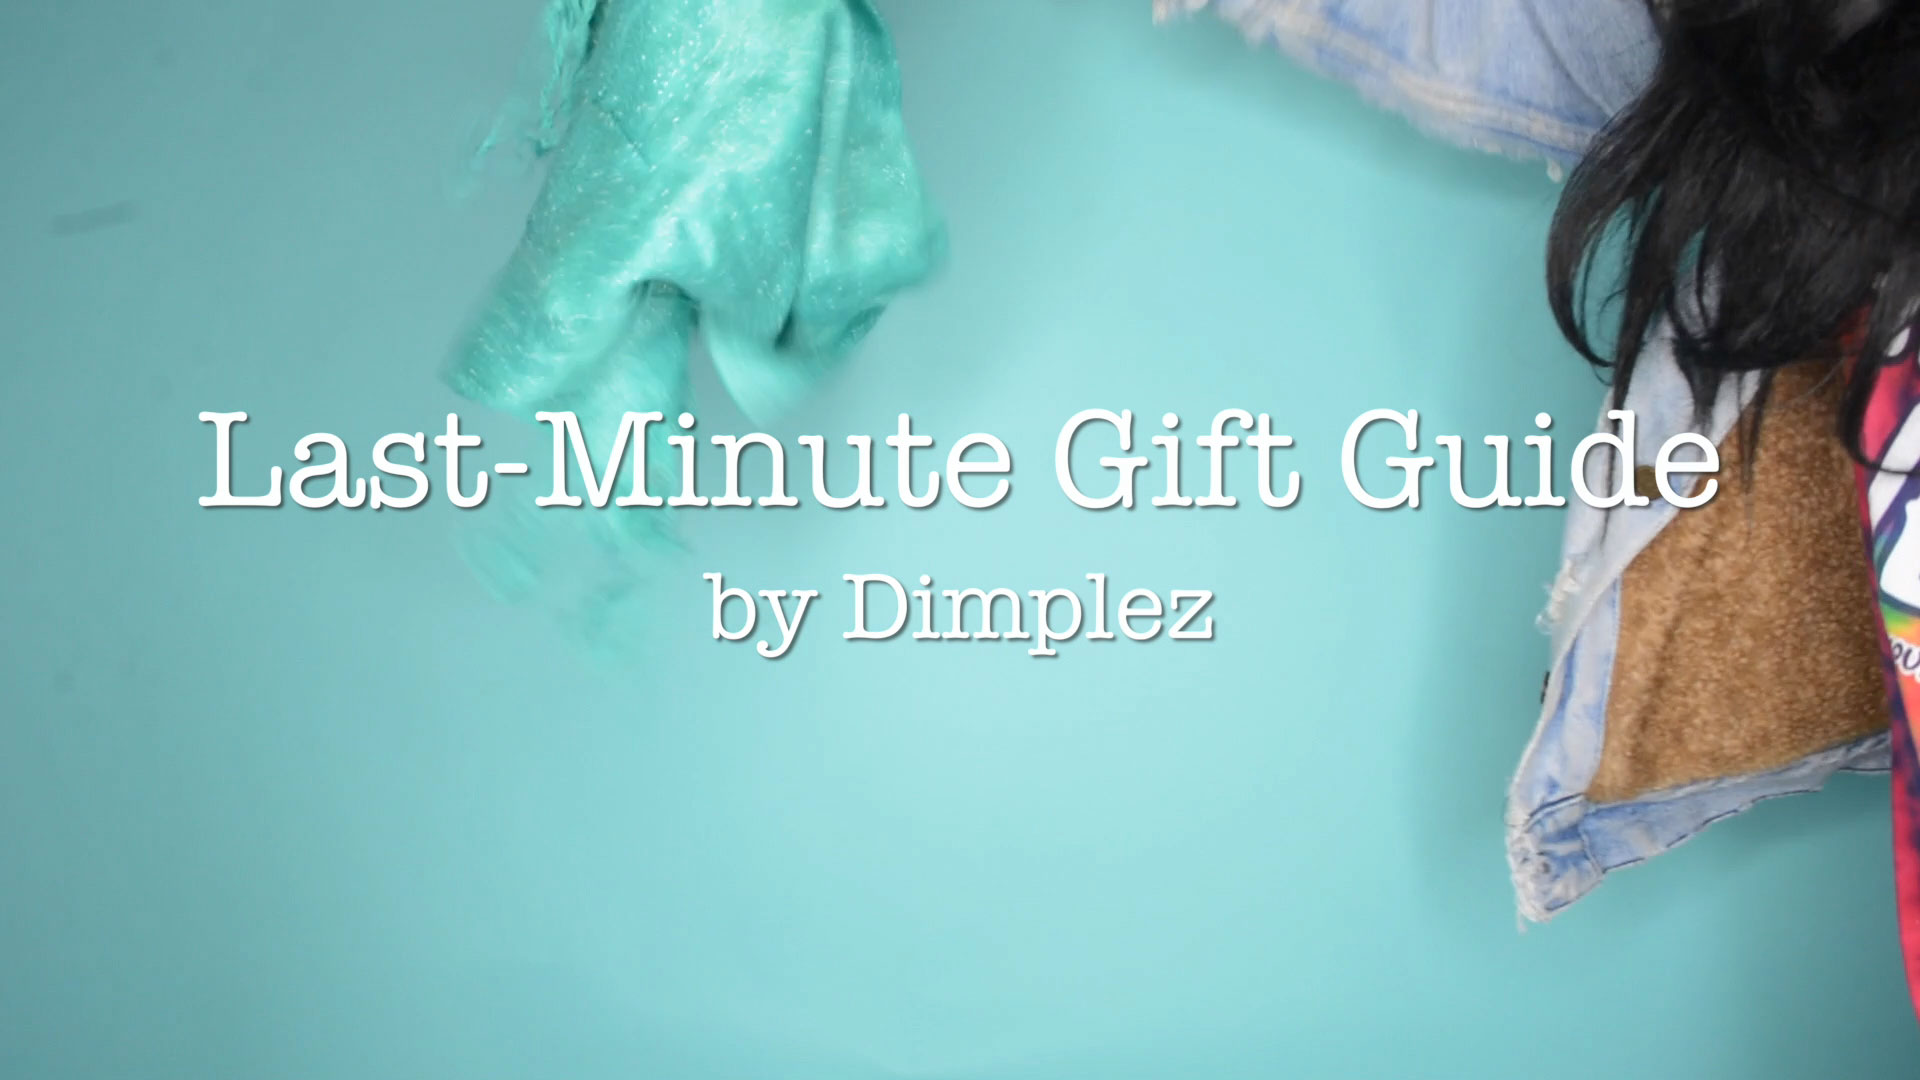 A Last-Minute Gift Guide